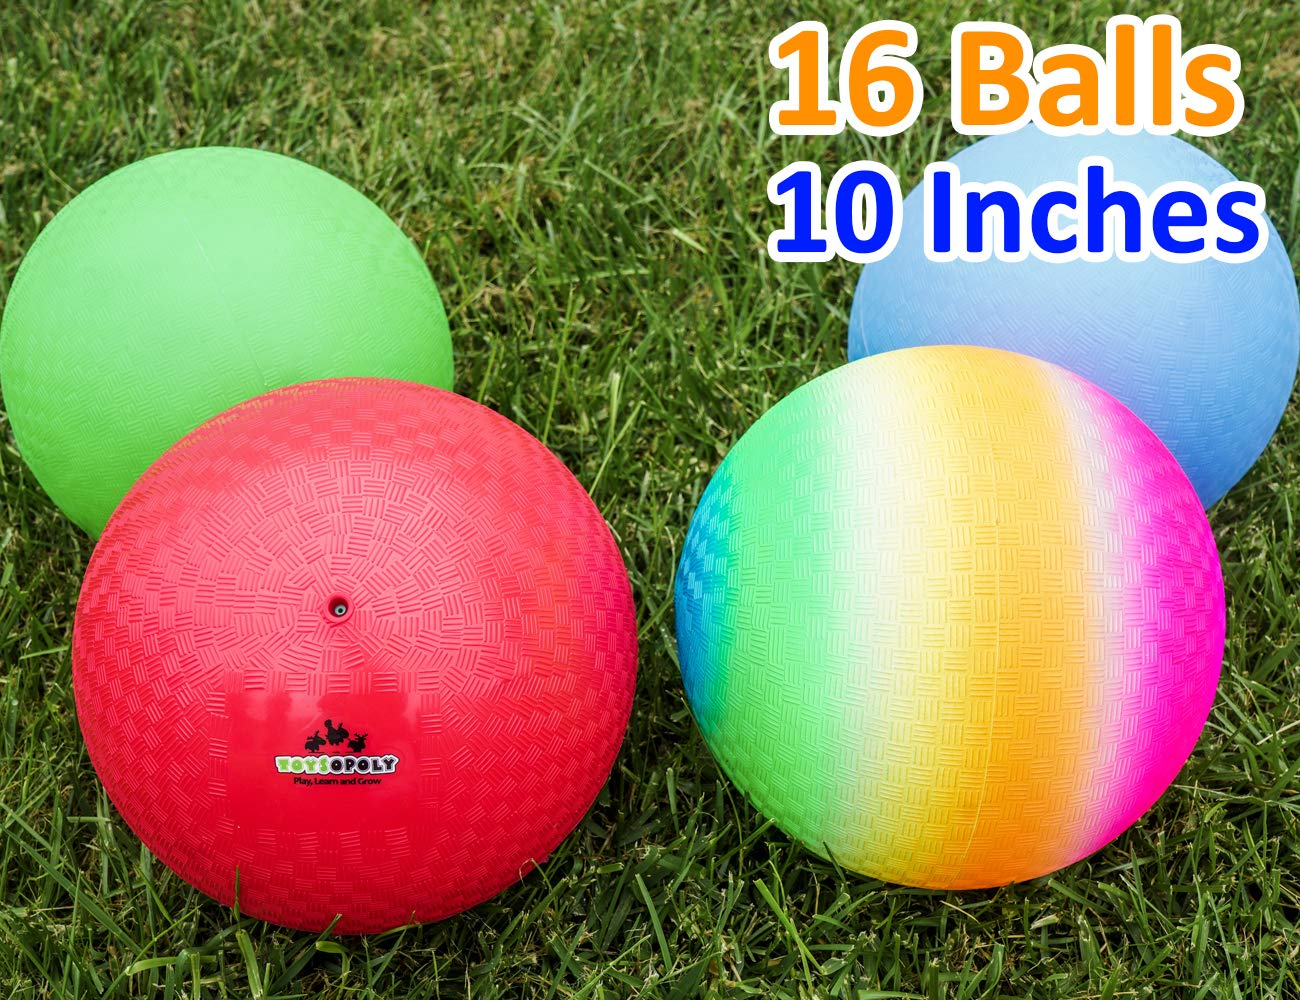 Playground Balls 10 inch Dodgeball (Set of 16) Kickball for Boys Girls Kids Adults - Official Size Bouncy Dodge Ball, Handball, Four Square Picnic School + Free Pump by ToysOpoly